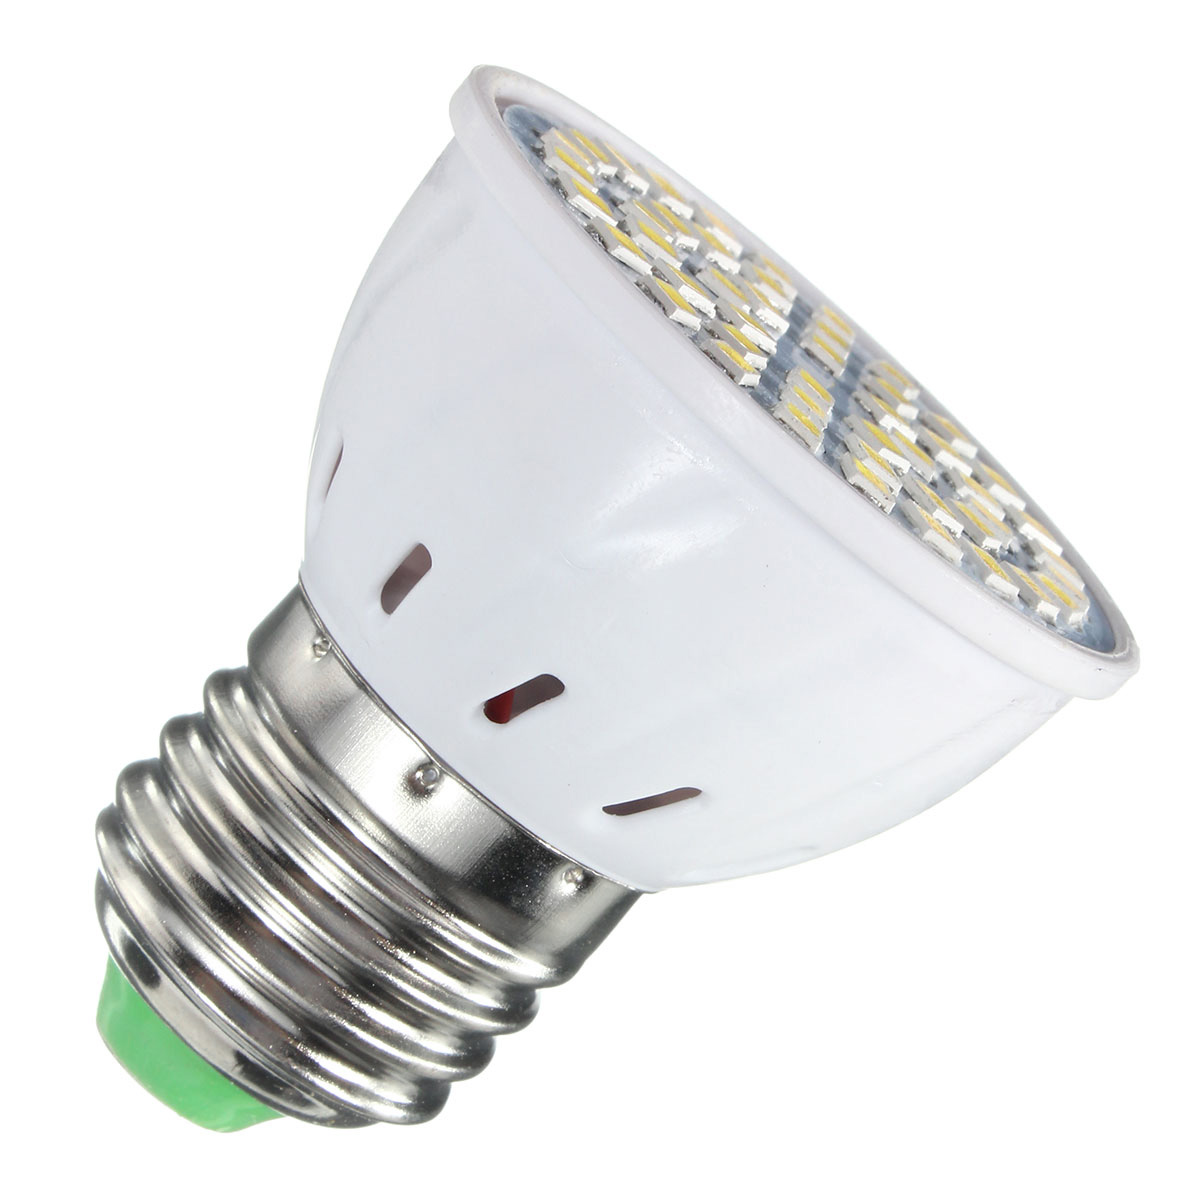 E27 E14 GU10 MR16 3W 48 SMD 2835 LED Pure White Warm White Spot Lightting Bulb AC110V AV220V